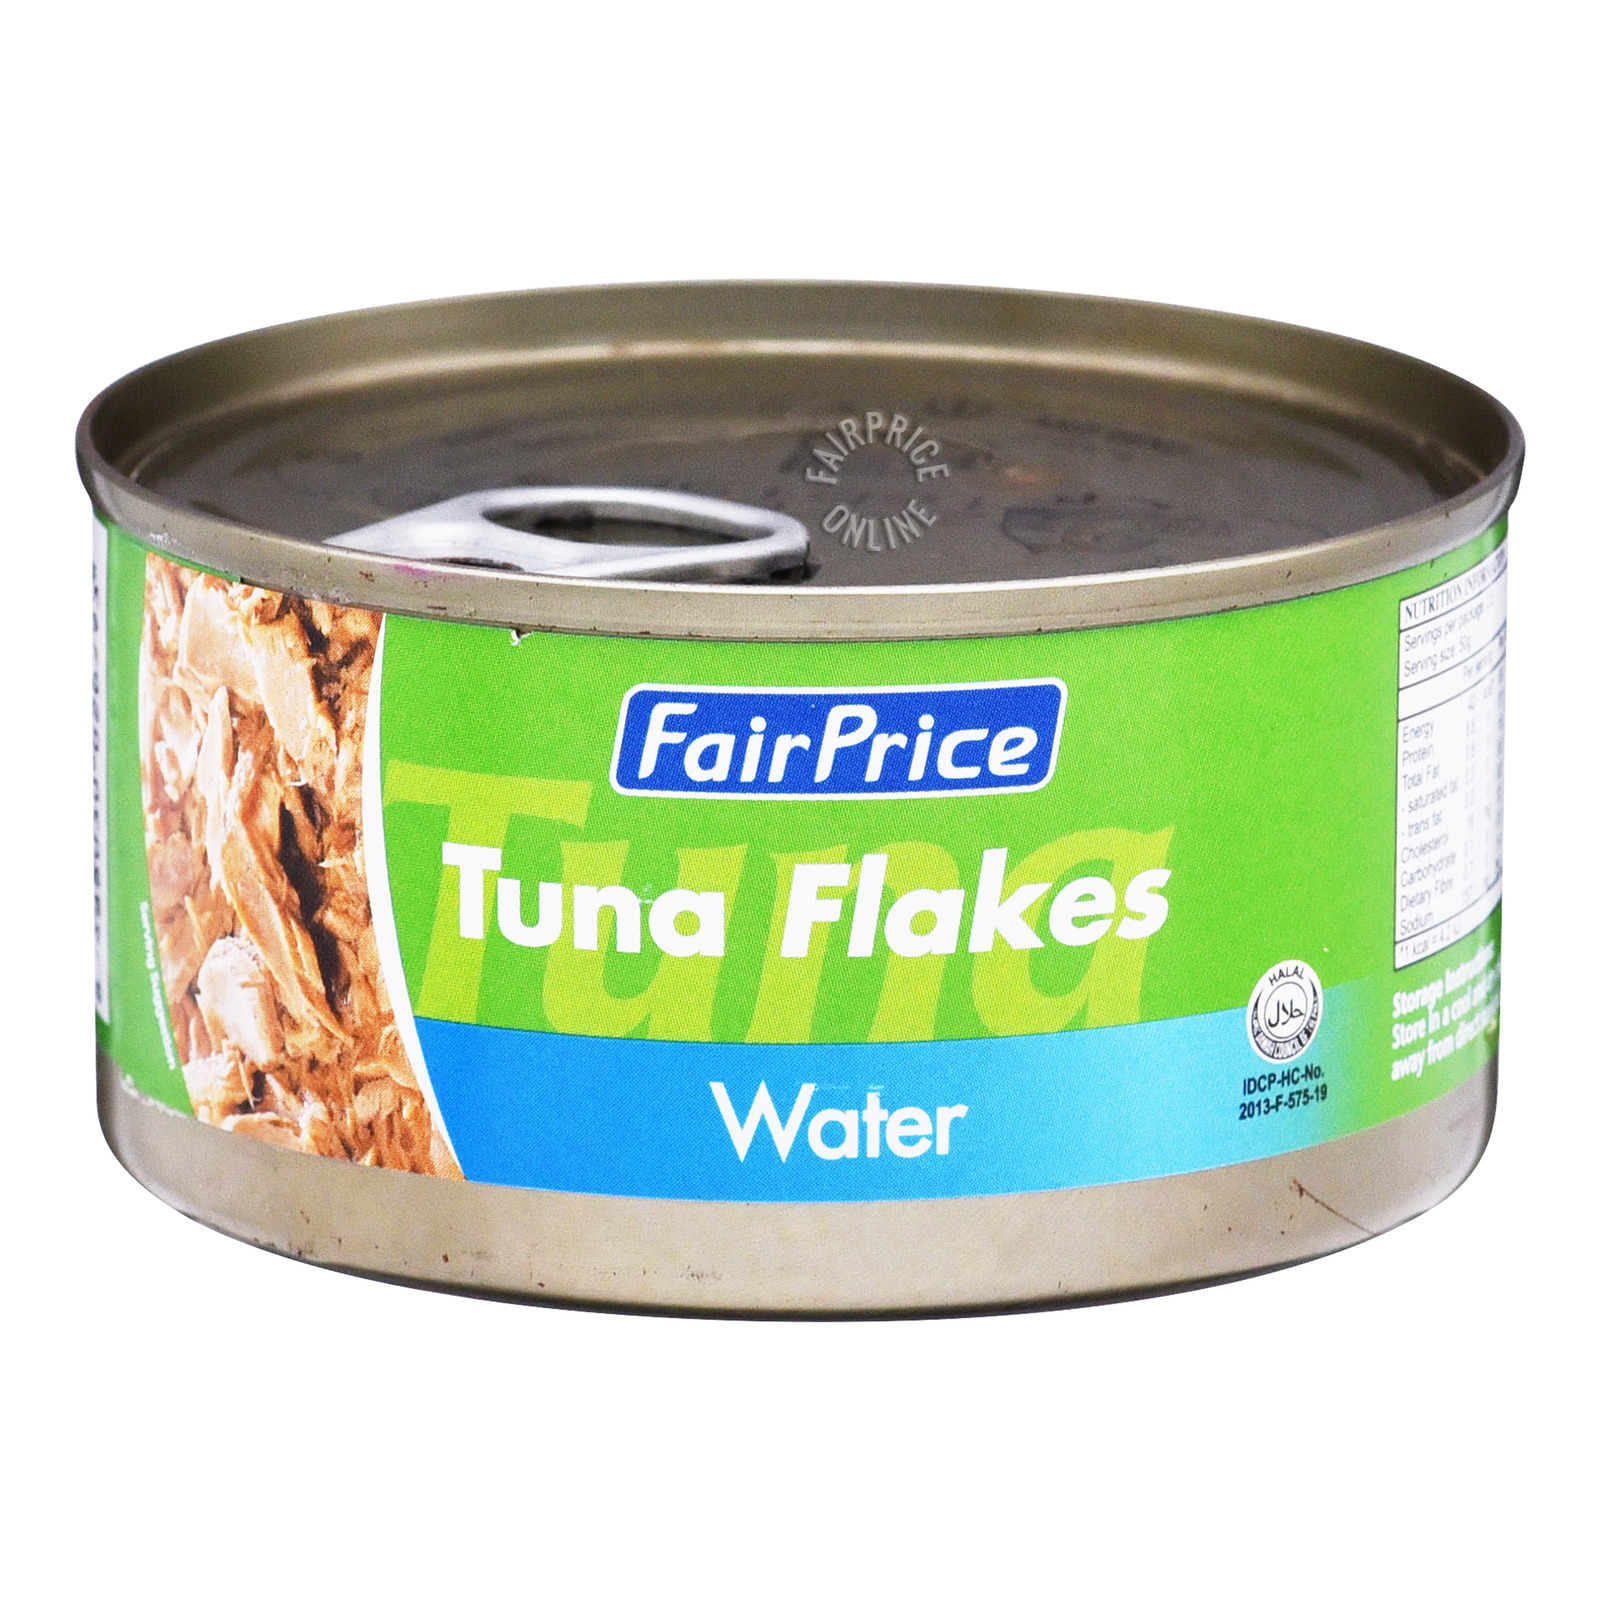 FairPrice Tuna Flakes - Water